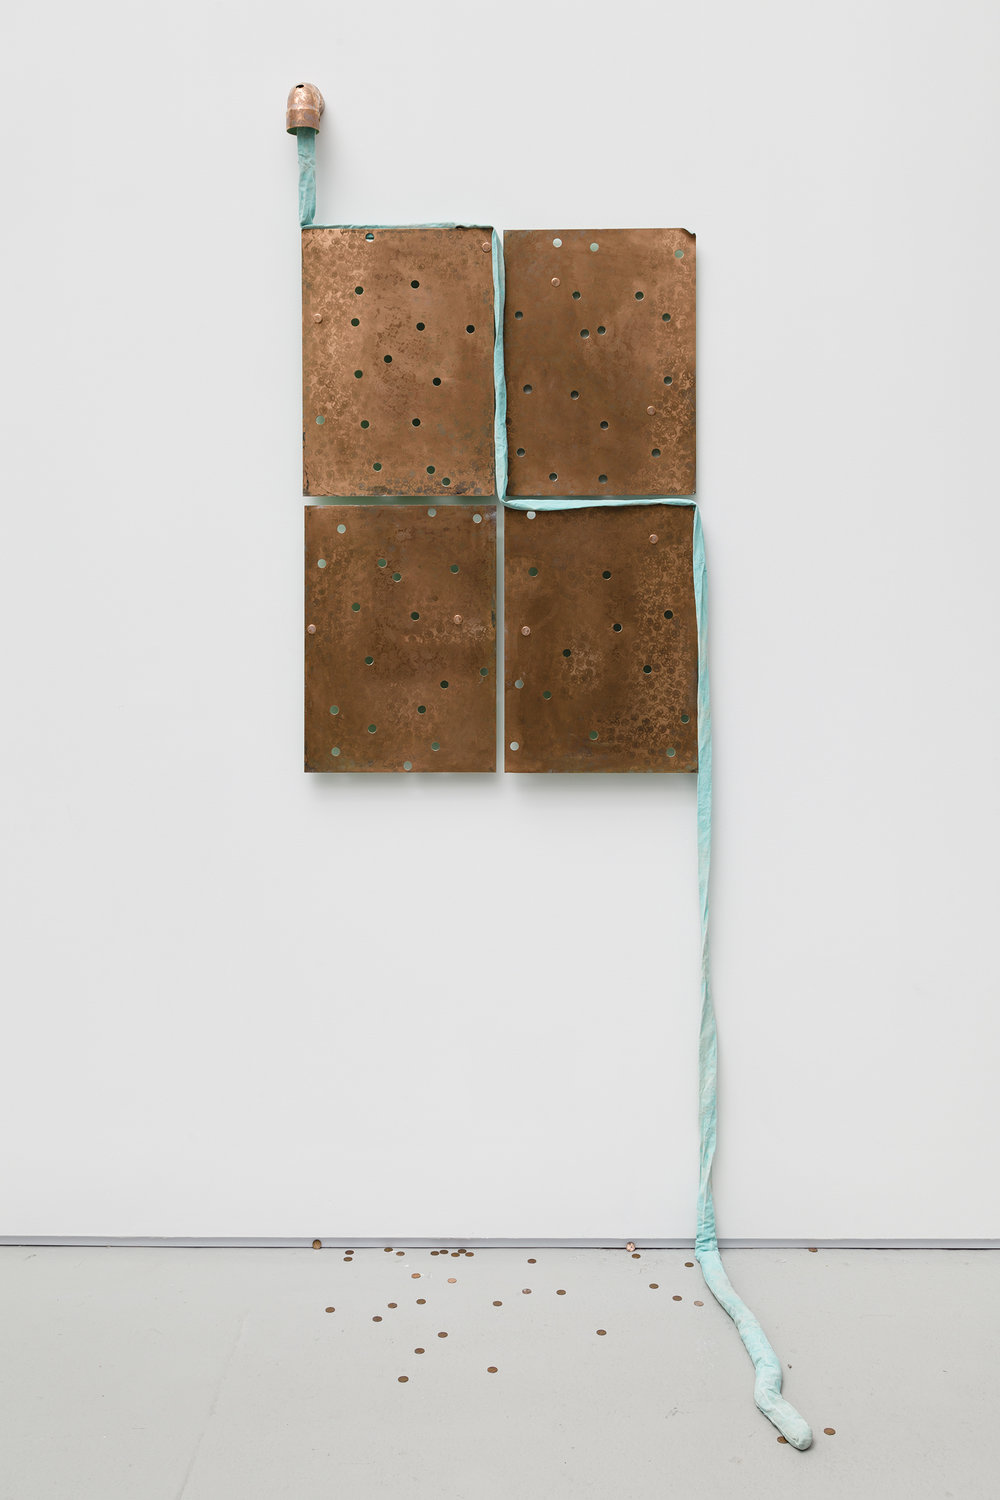 Jory Rabinovitz,  Through 2,  2015, melted pennies and un-melted pennies, Verdigris Green fabric, 97.5 x 36 x 30 in